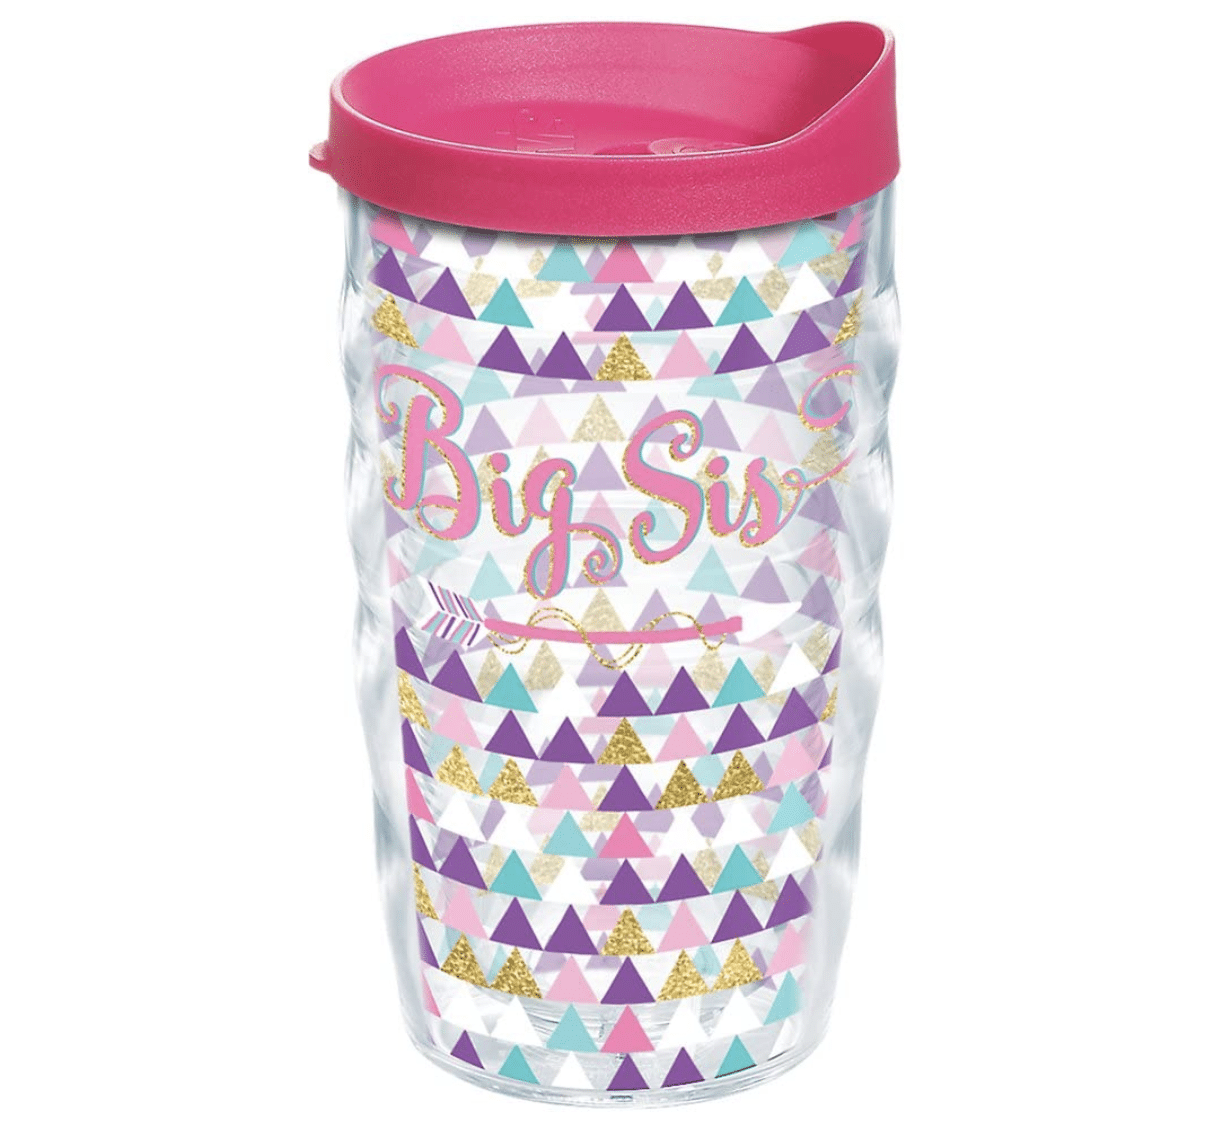 big-sister-gifts-cup